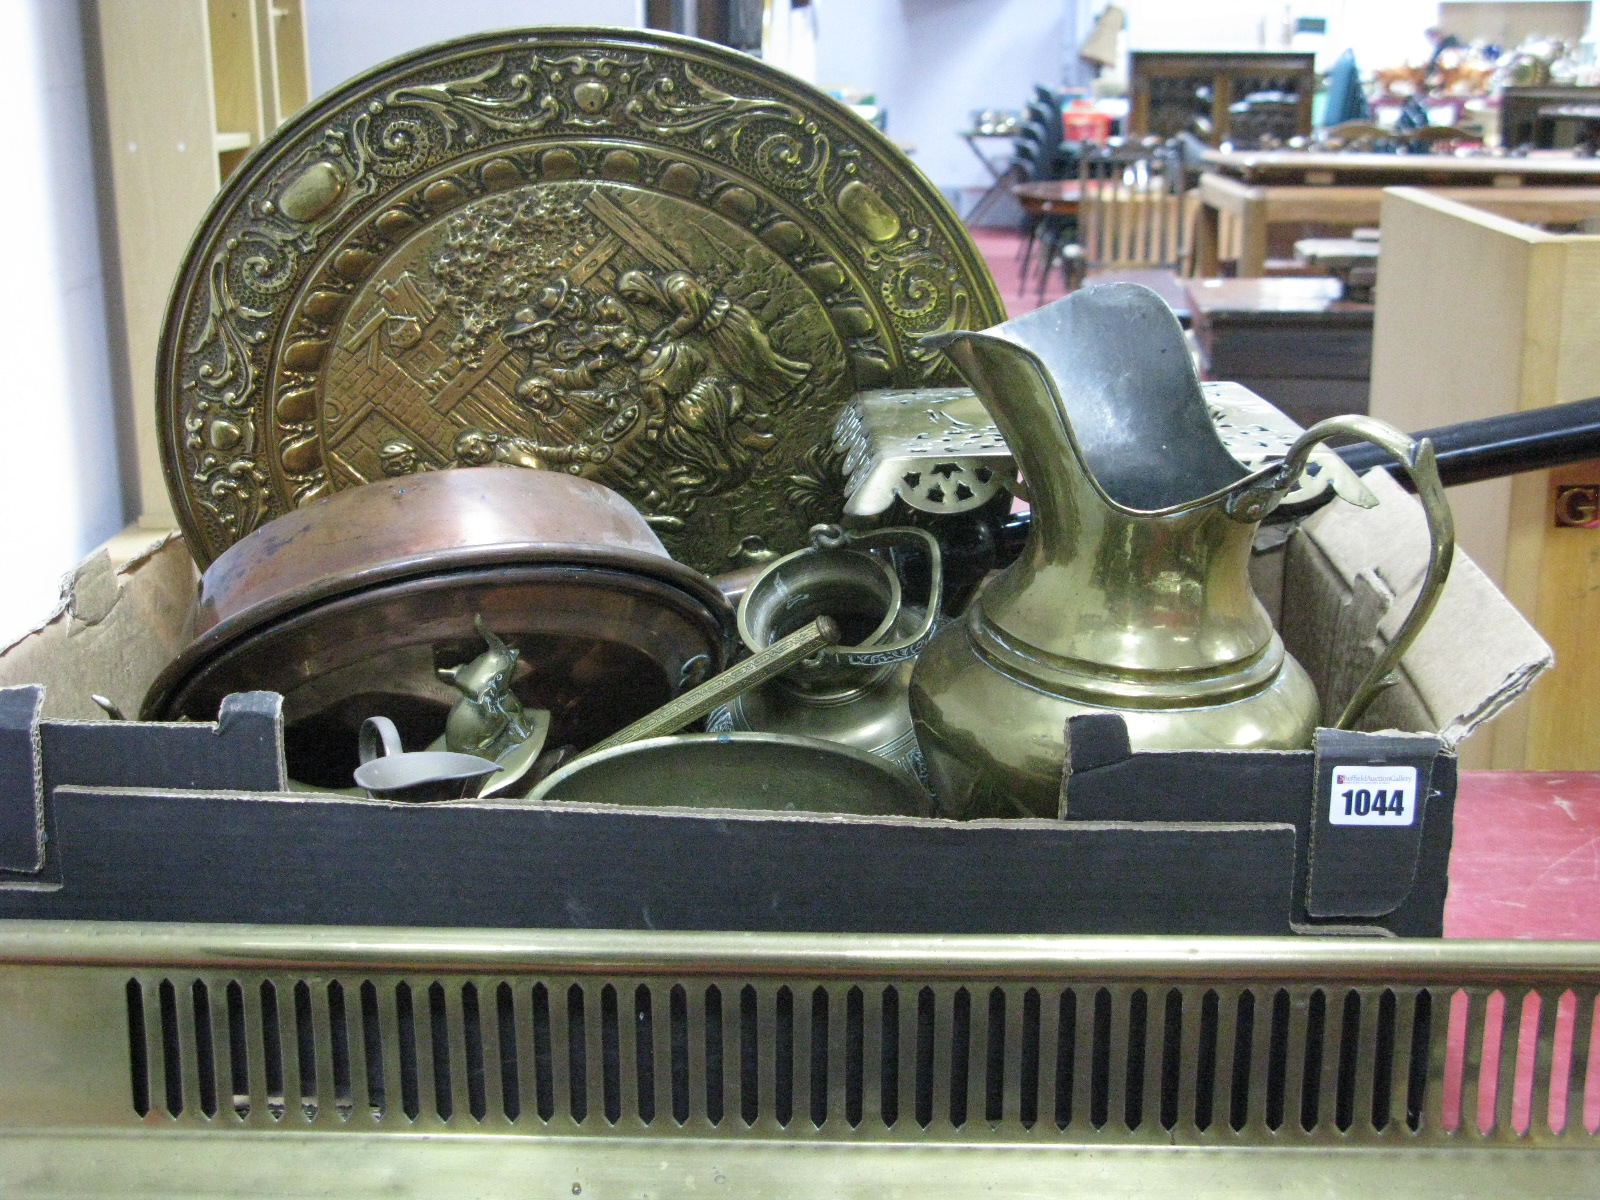 Lot 1044 - A XIX Century Copper Warming Pan, brass trivet, other brass ware:- One Box plus fender.